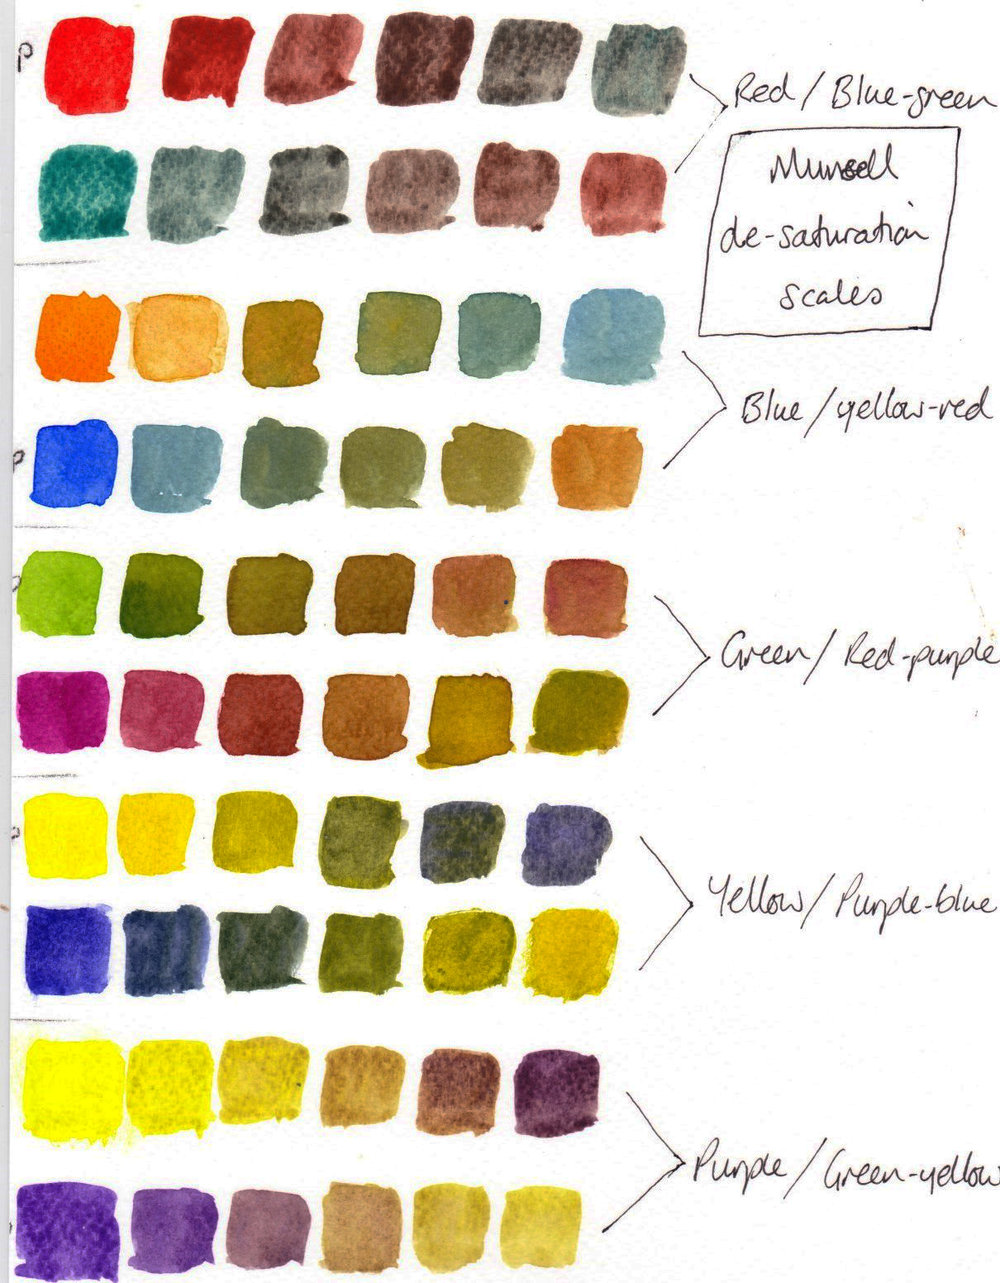 Munsell de-saturation scales